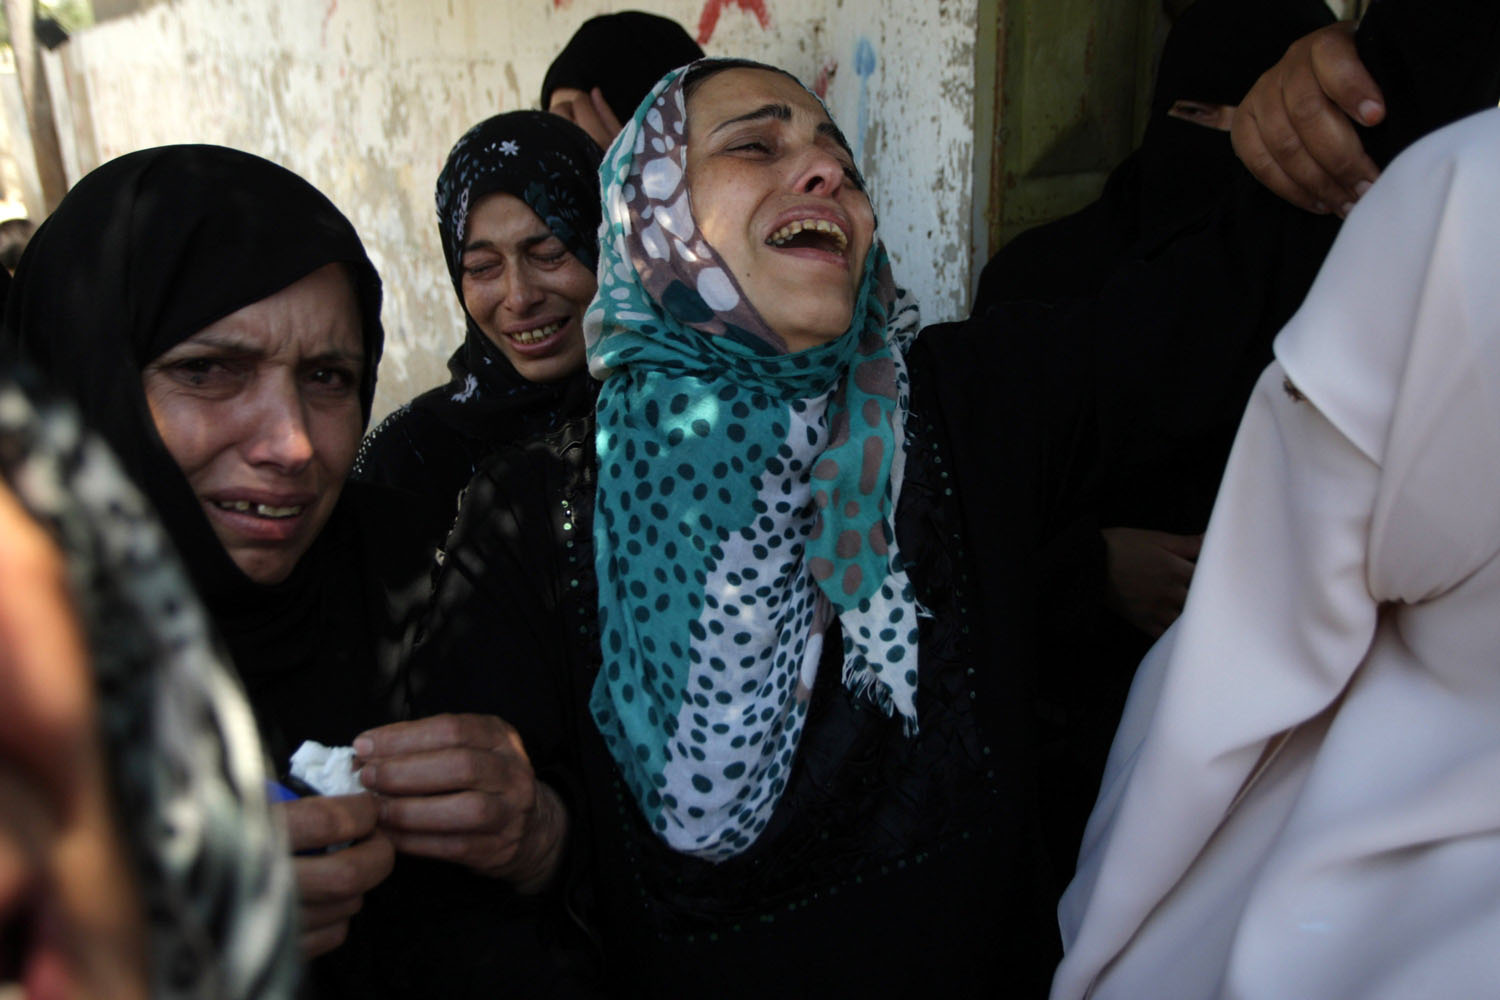 Jul. 9, 2014. Relatives and friends carry the bodies of the al-Kaware family as they mourn  during their funeral in Khan Yunis, in the Gaza Strip.The father and his six sons were all killed in an Israeli air strike that hit their home.